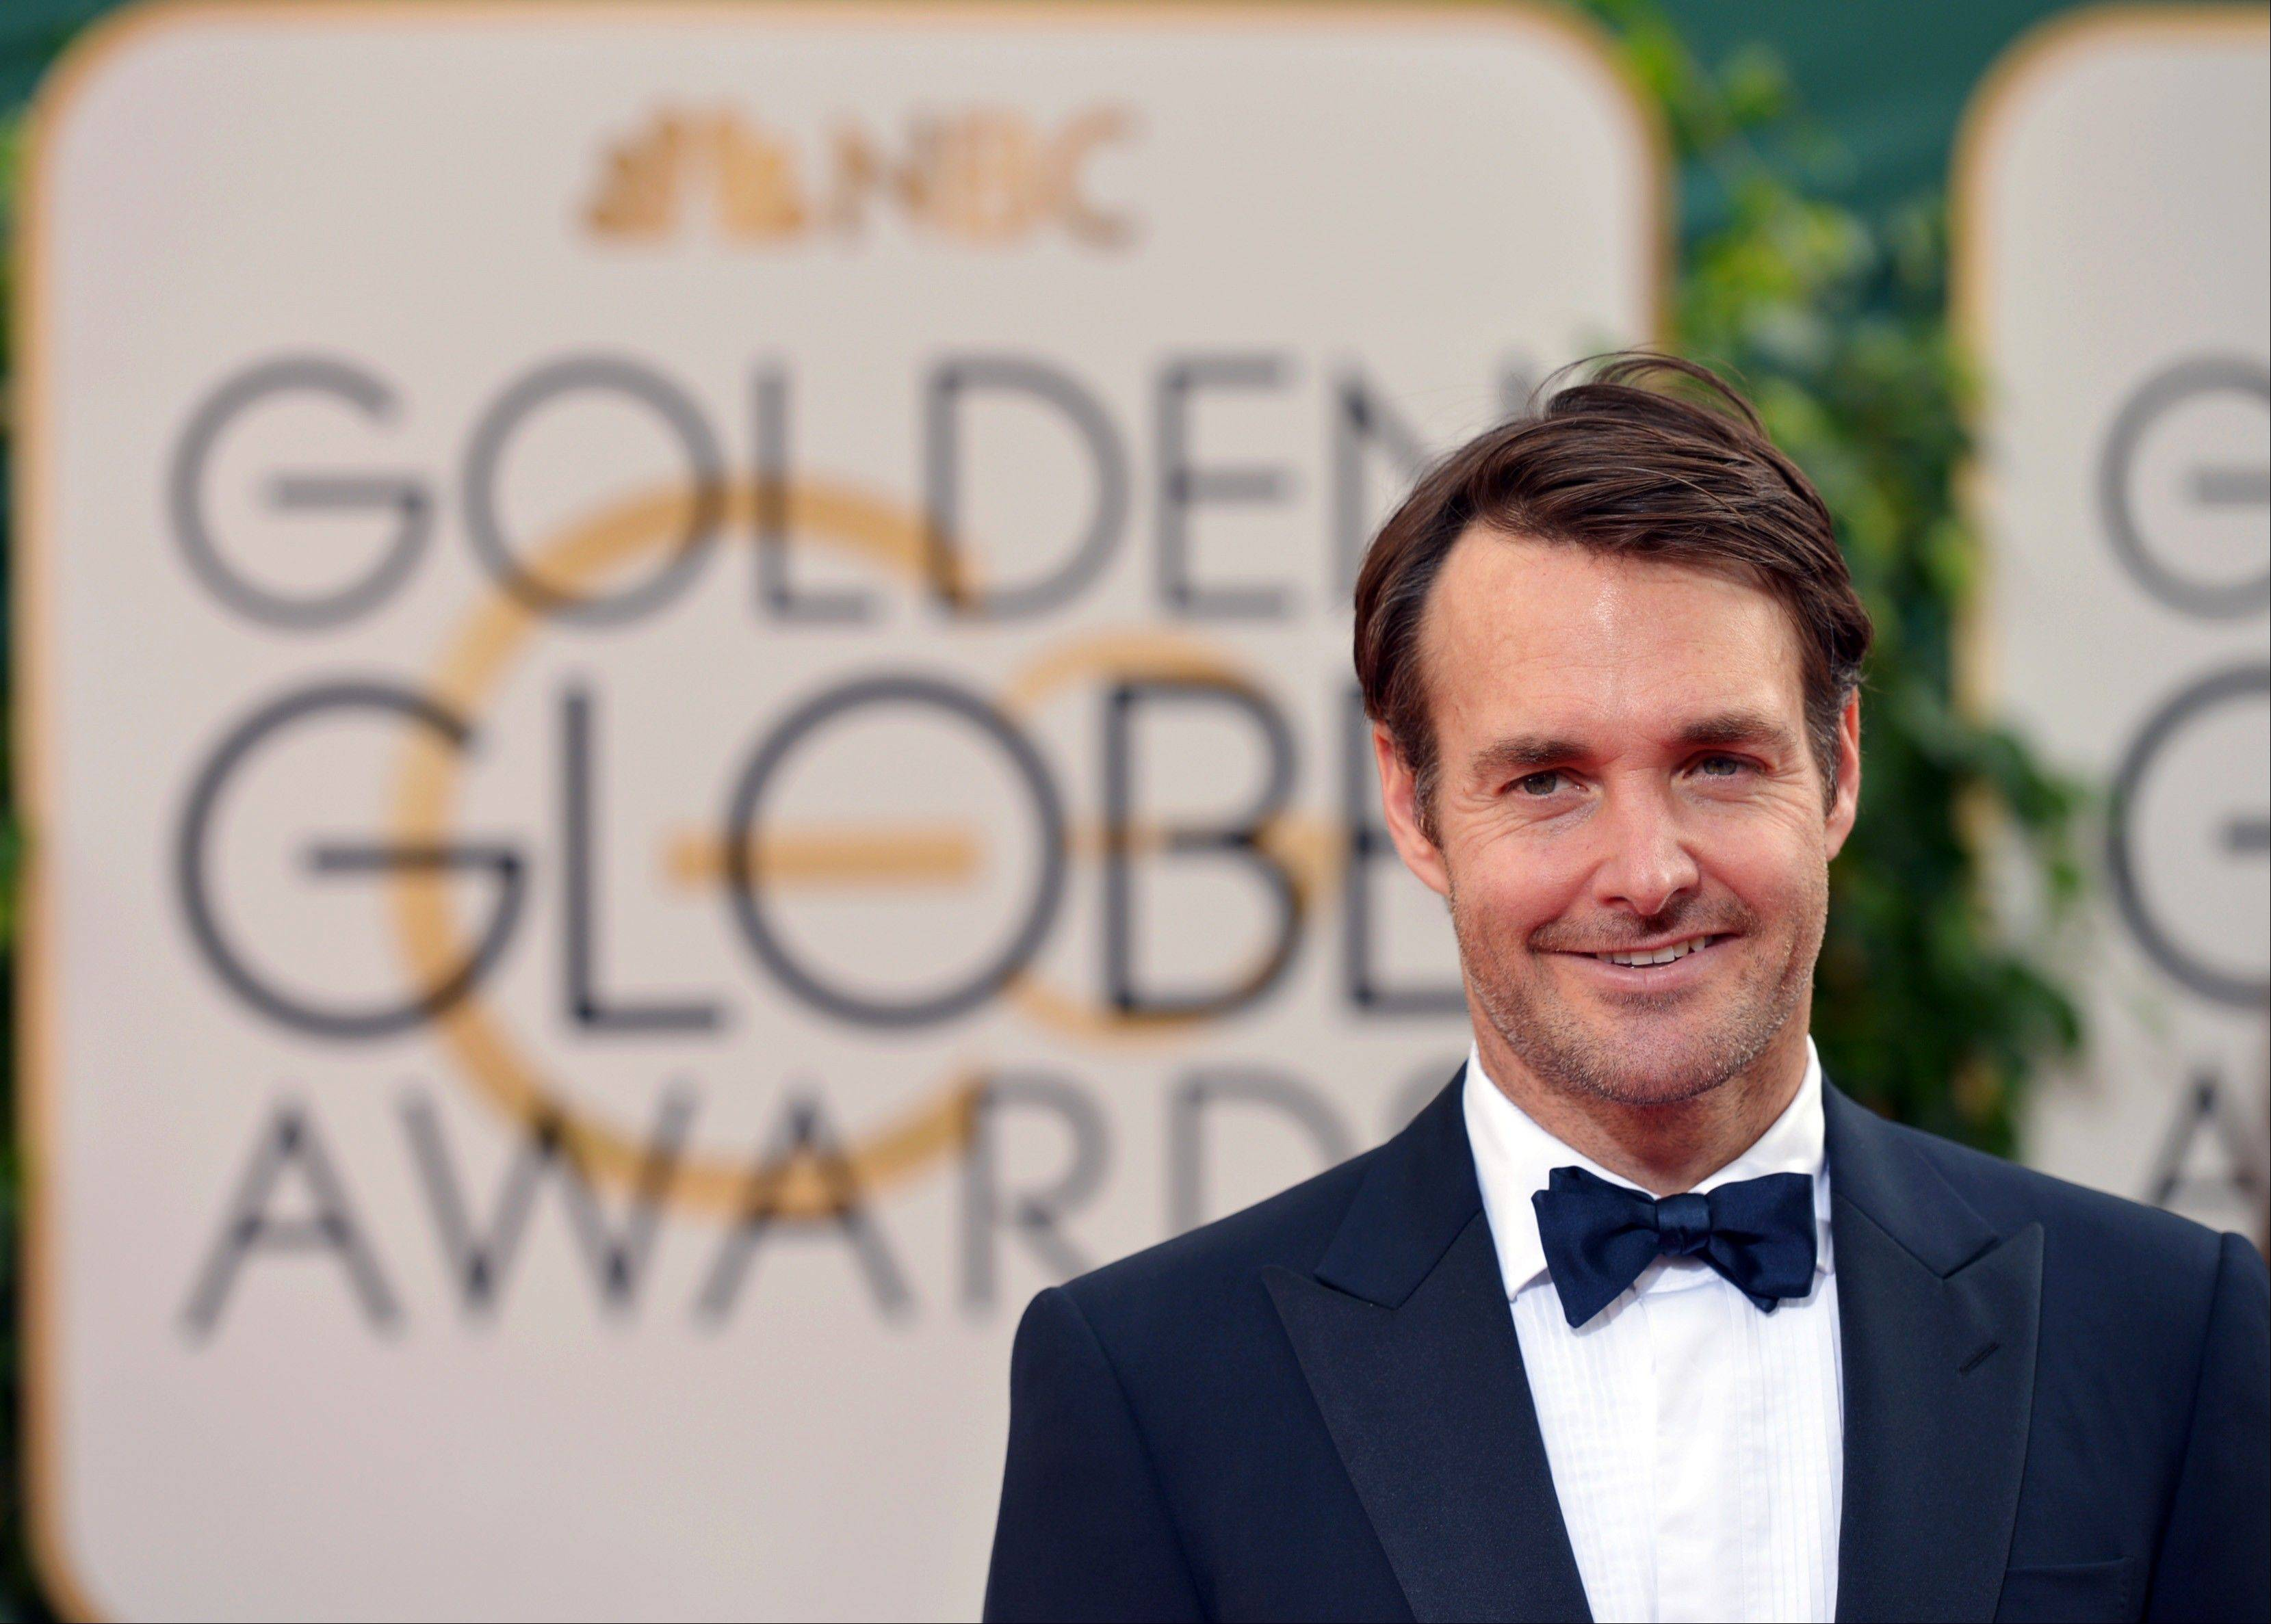 """Nebraska"" star Will Forte arrives at the 71st annual Golden Globe Awards."